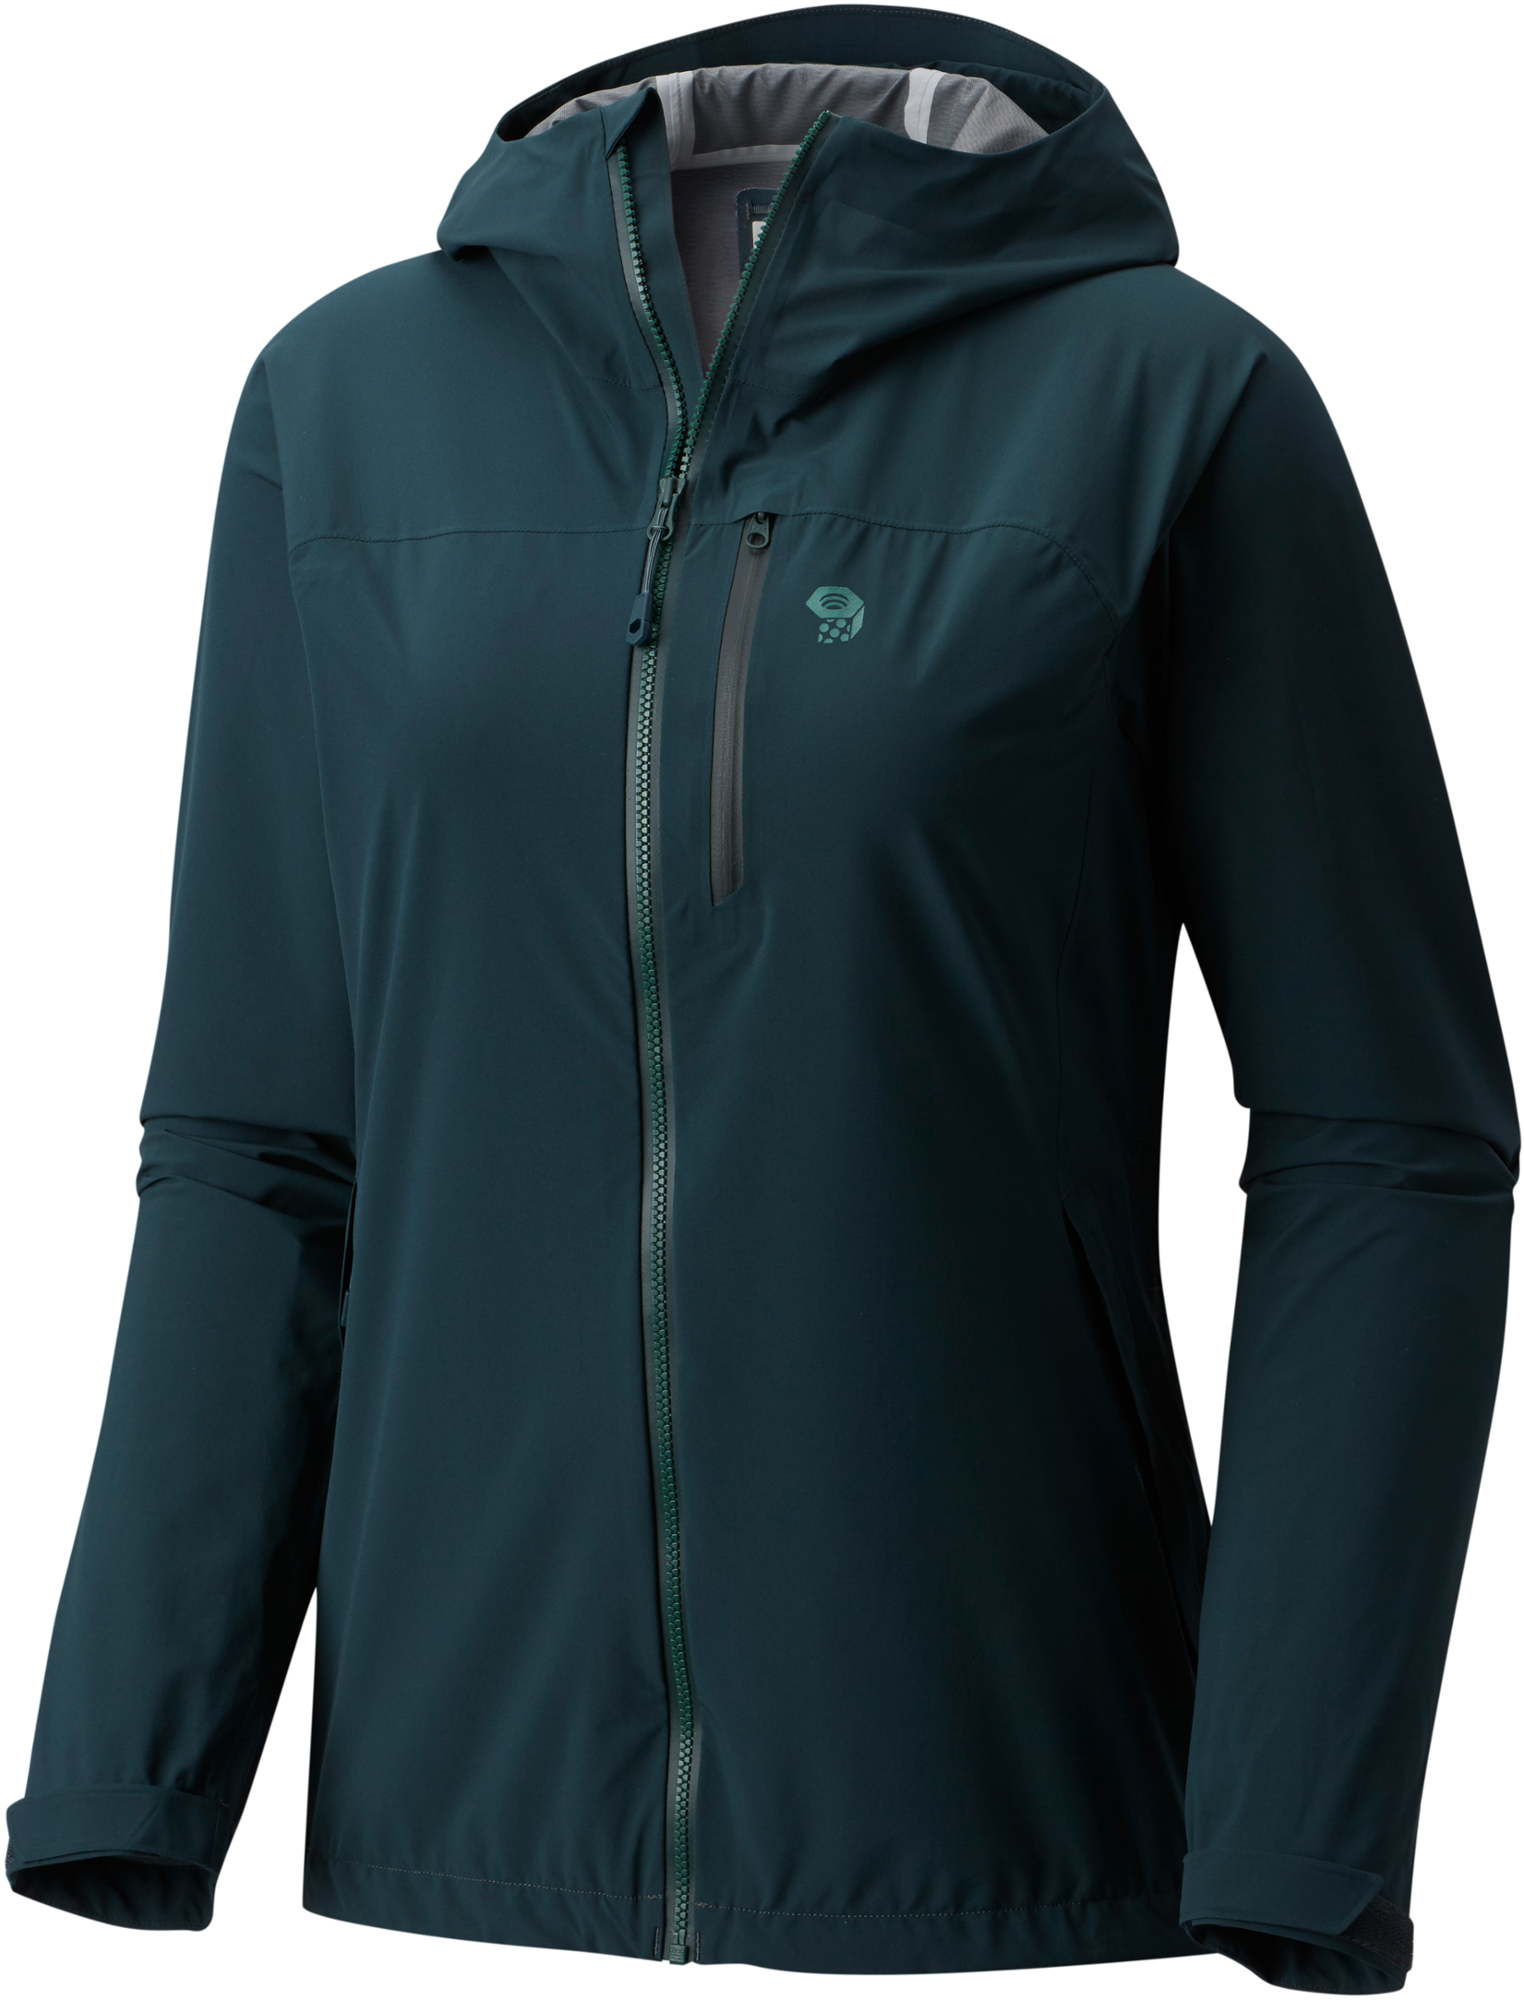 Nice looking, but the zippers on Marcie's rain jacket kept getting caught